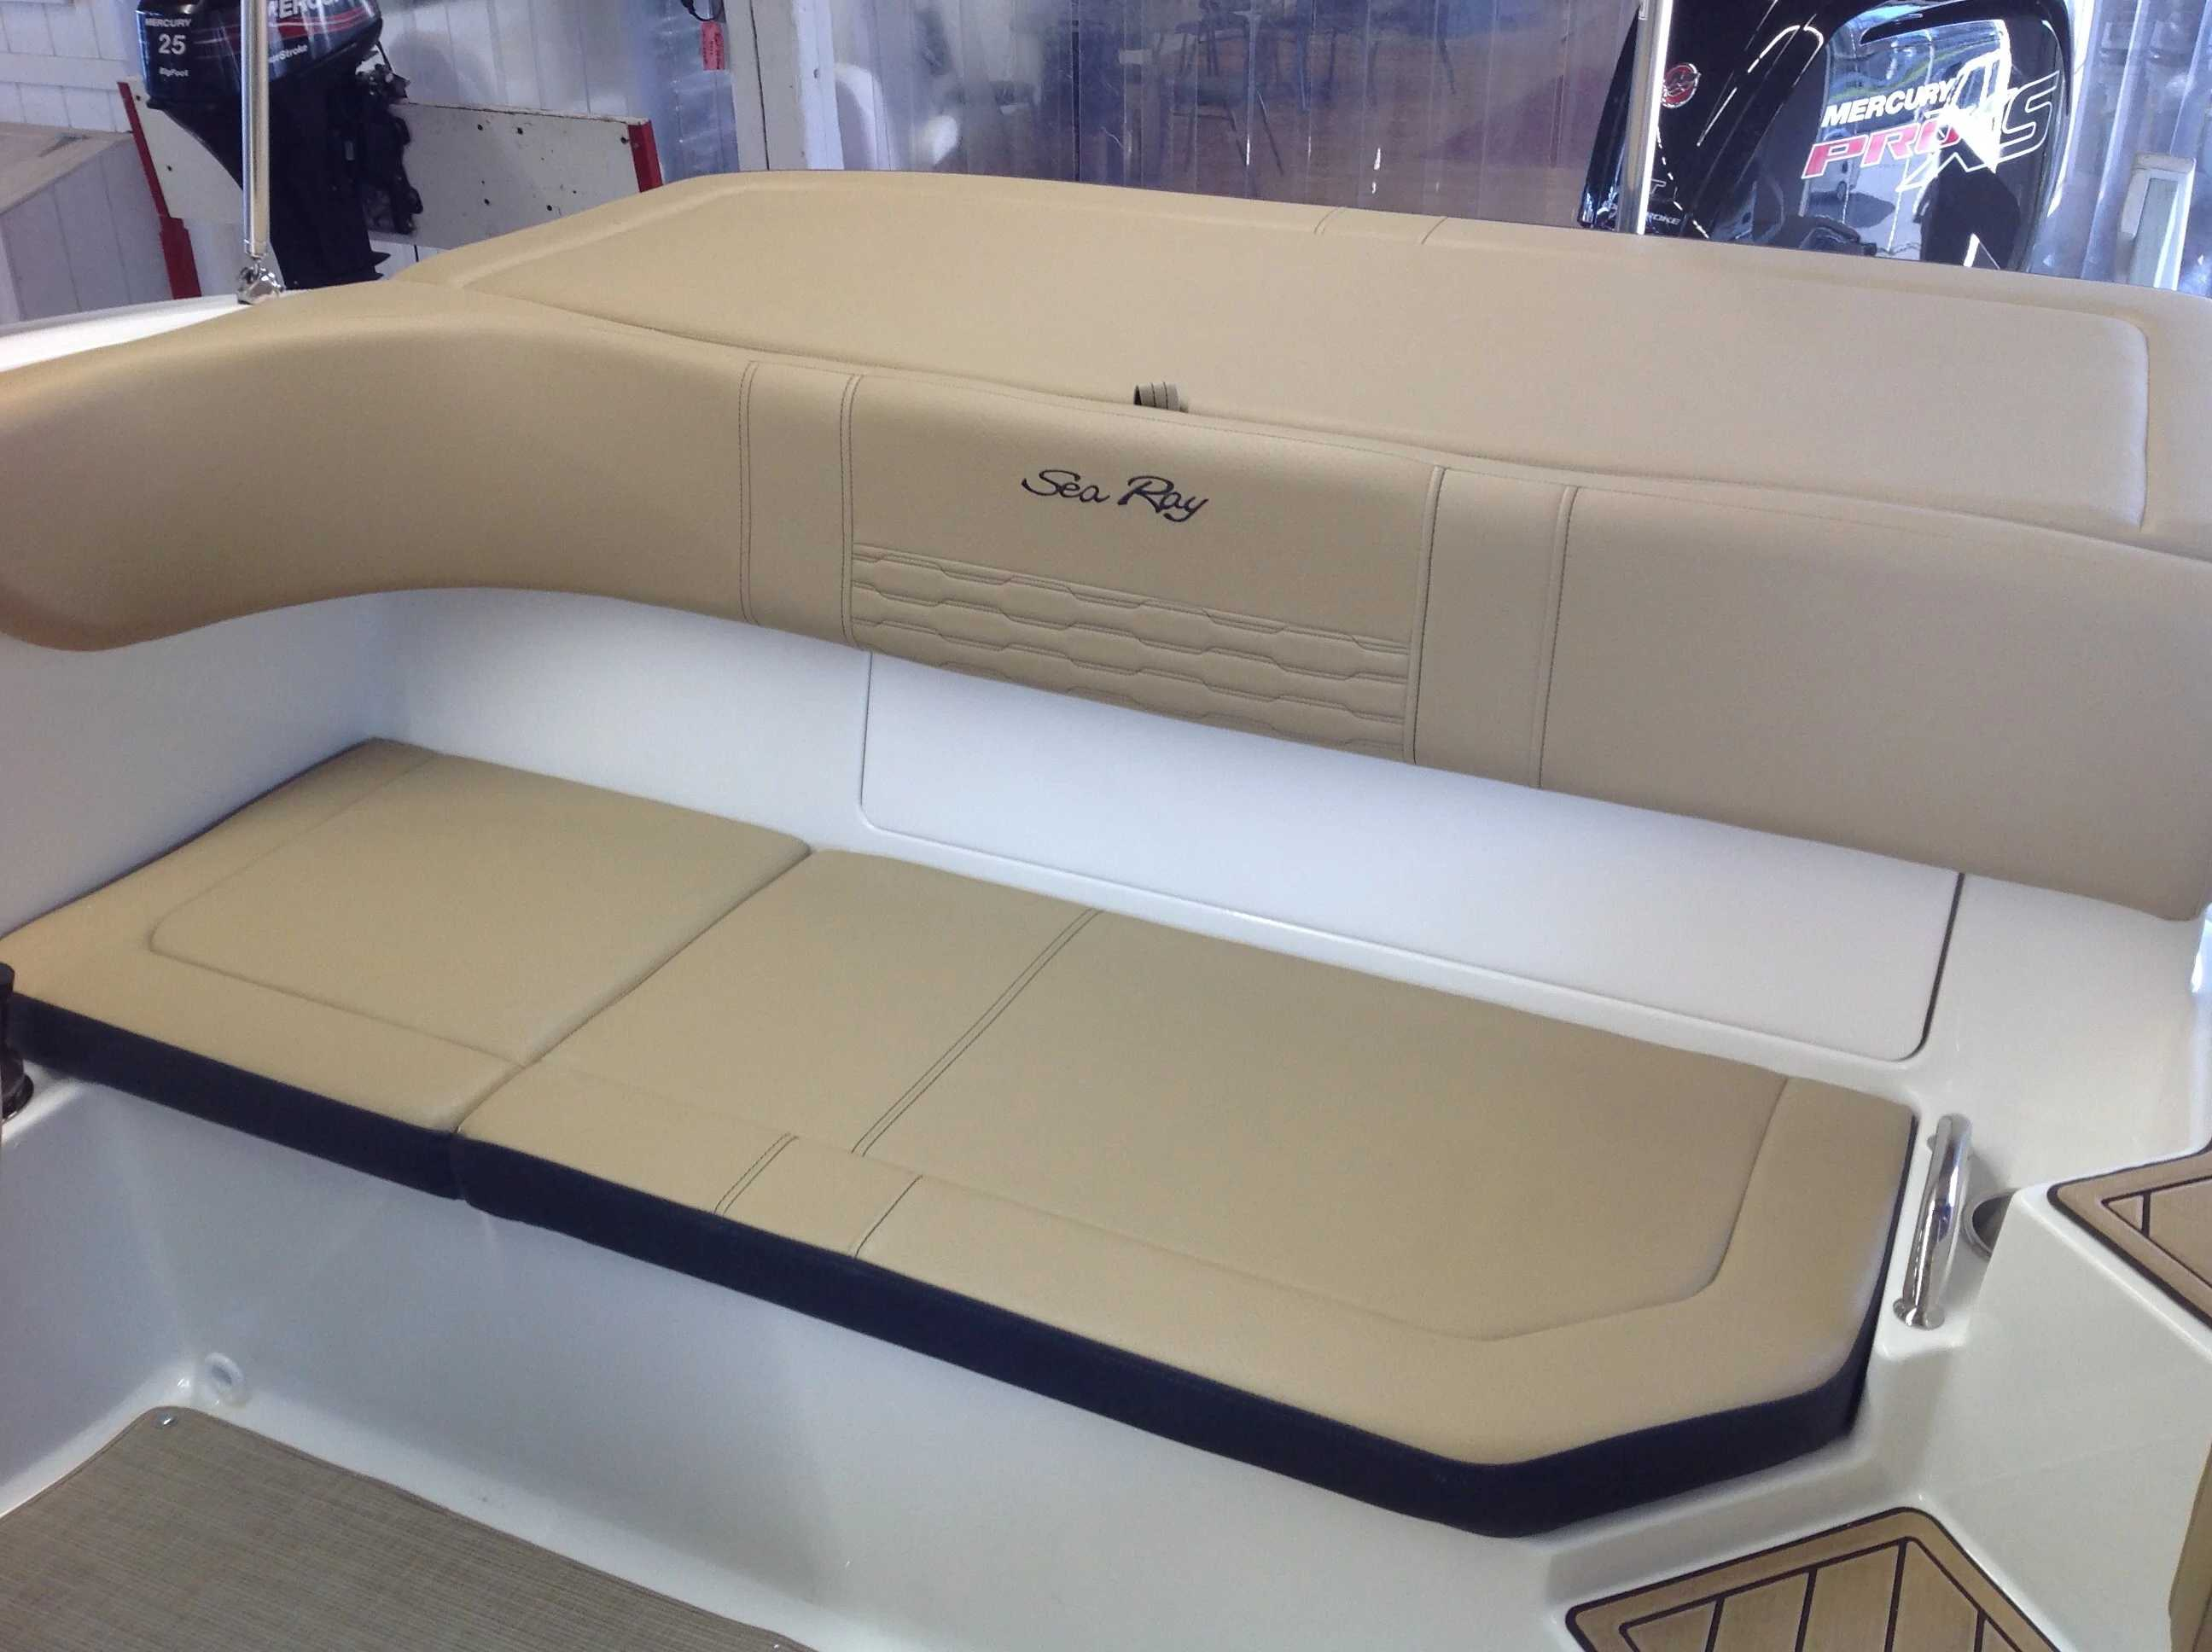 2021 Sea Ray boat for sale, model of the boat is 190 spxo & Image # 12 of 14